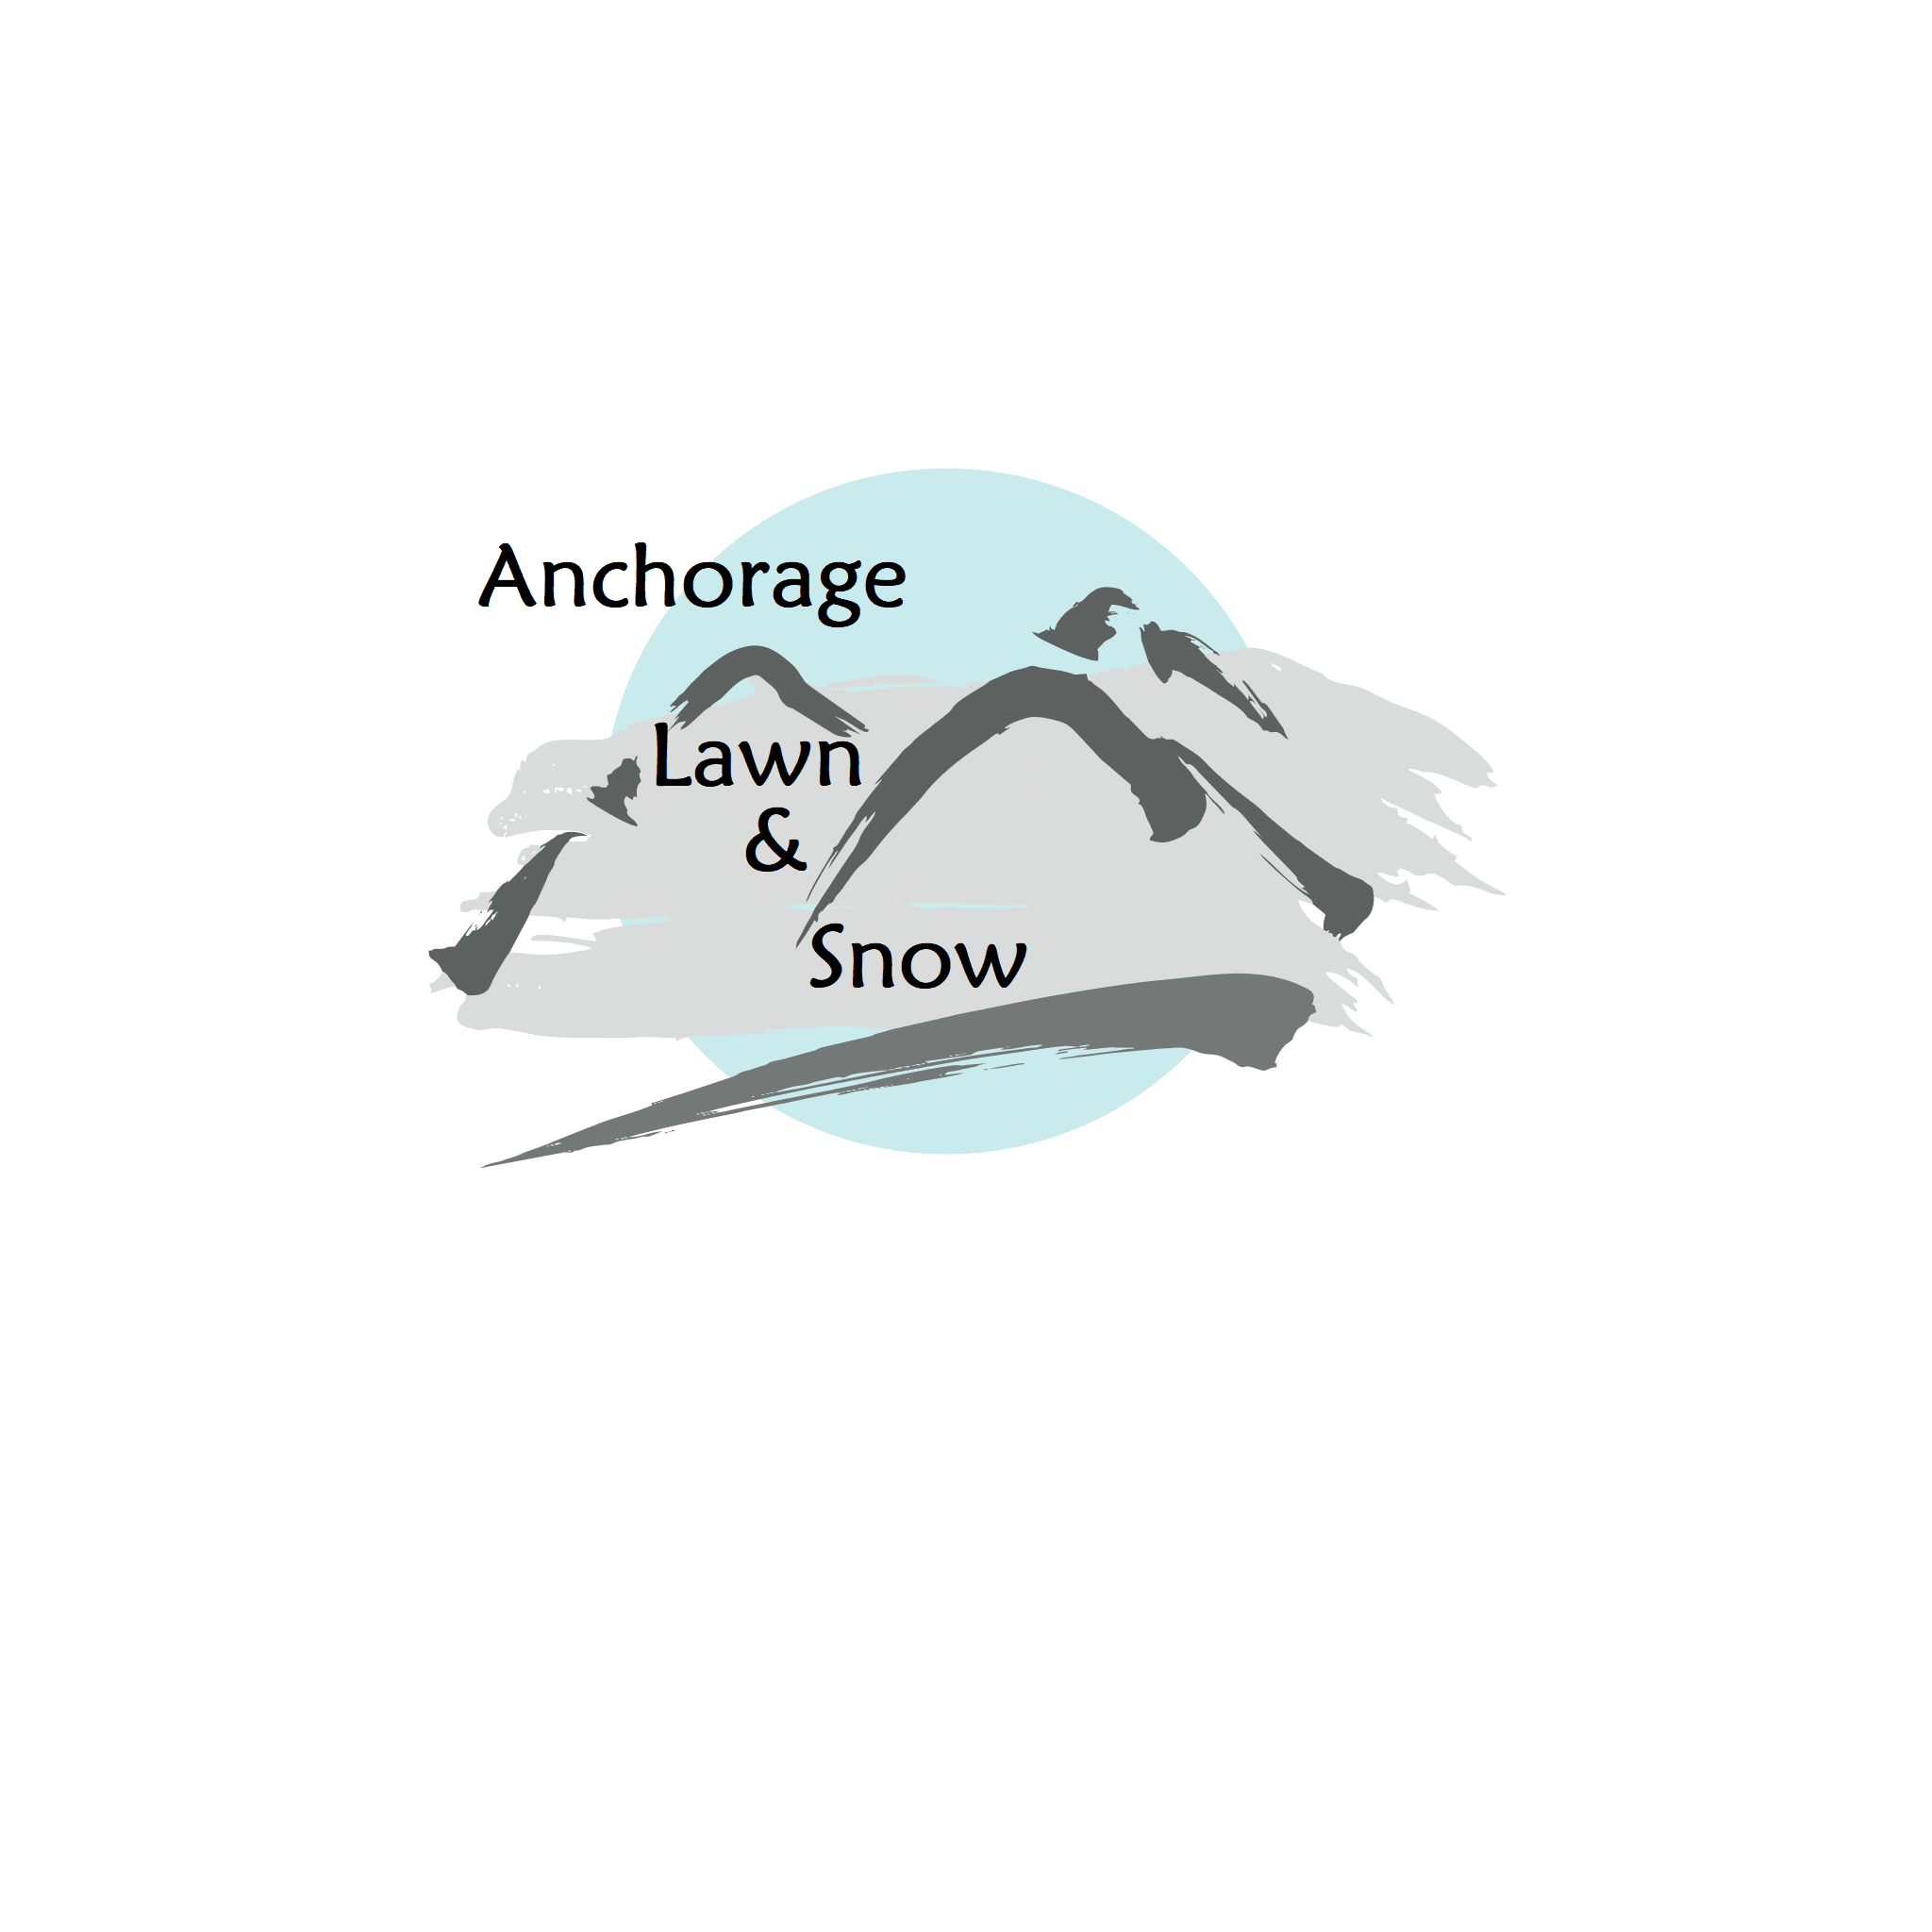 Anchorage Lawn & Snow Services